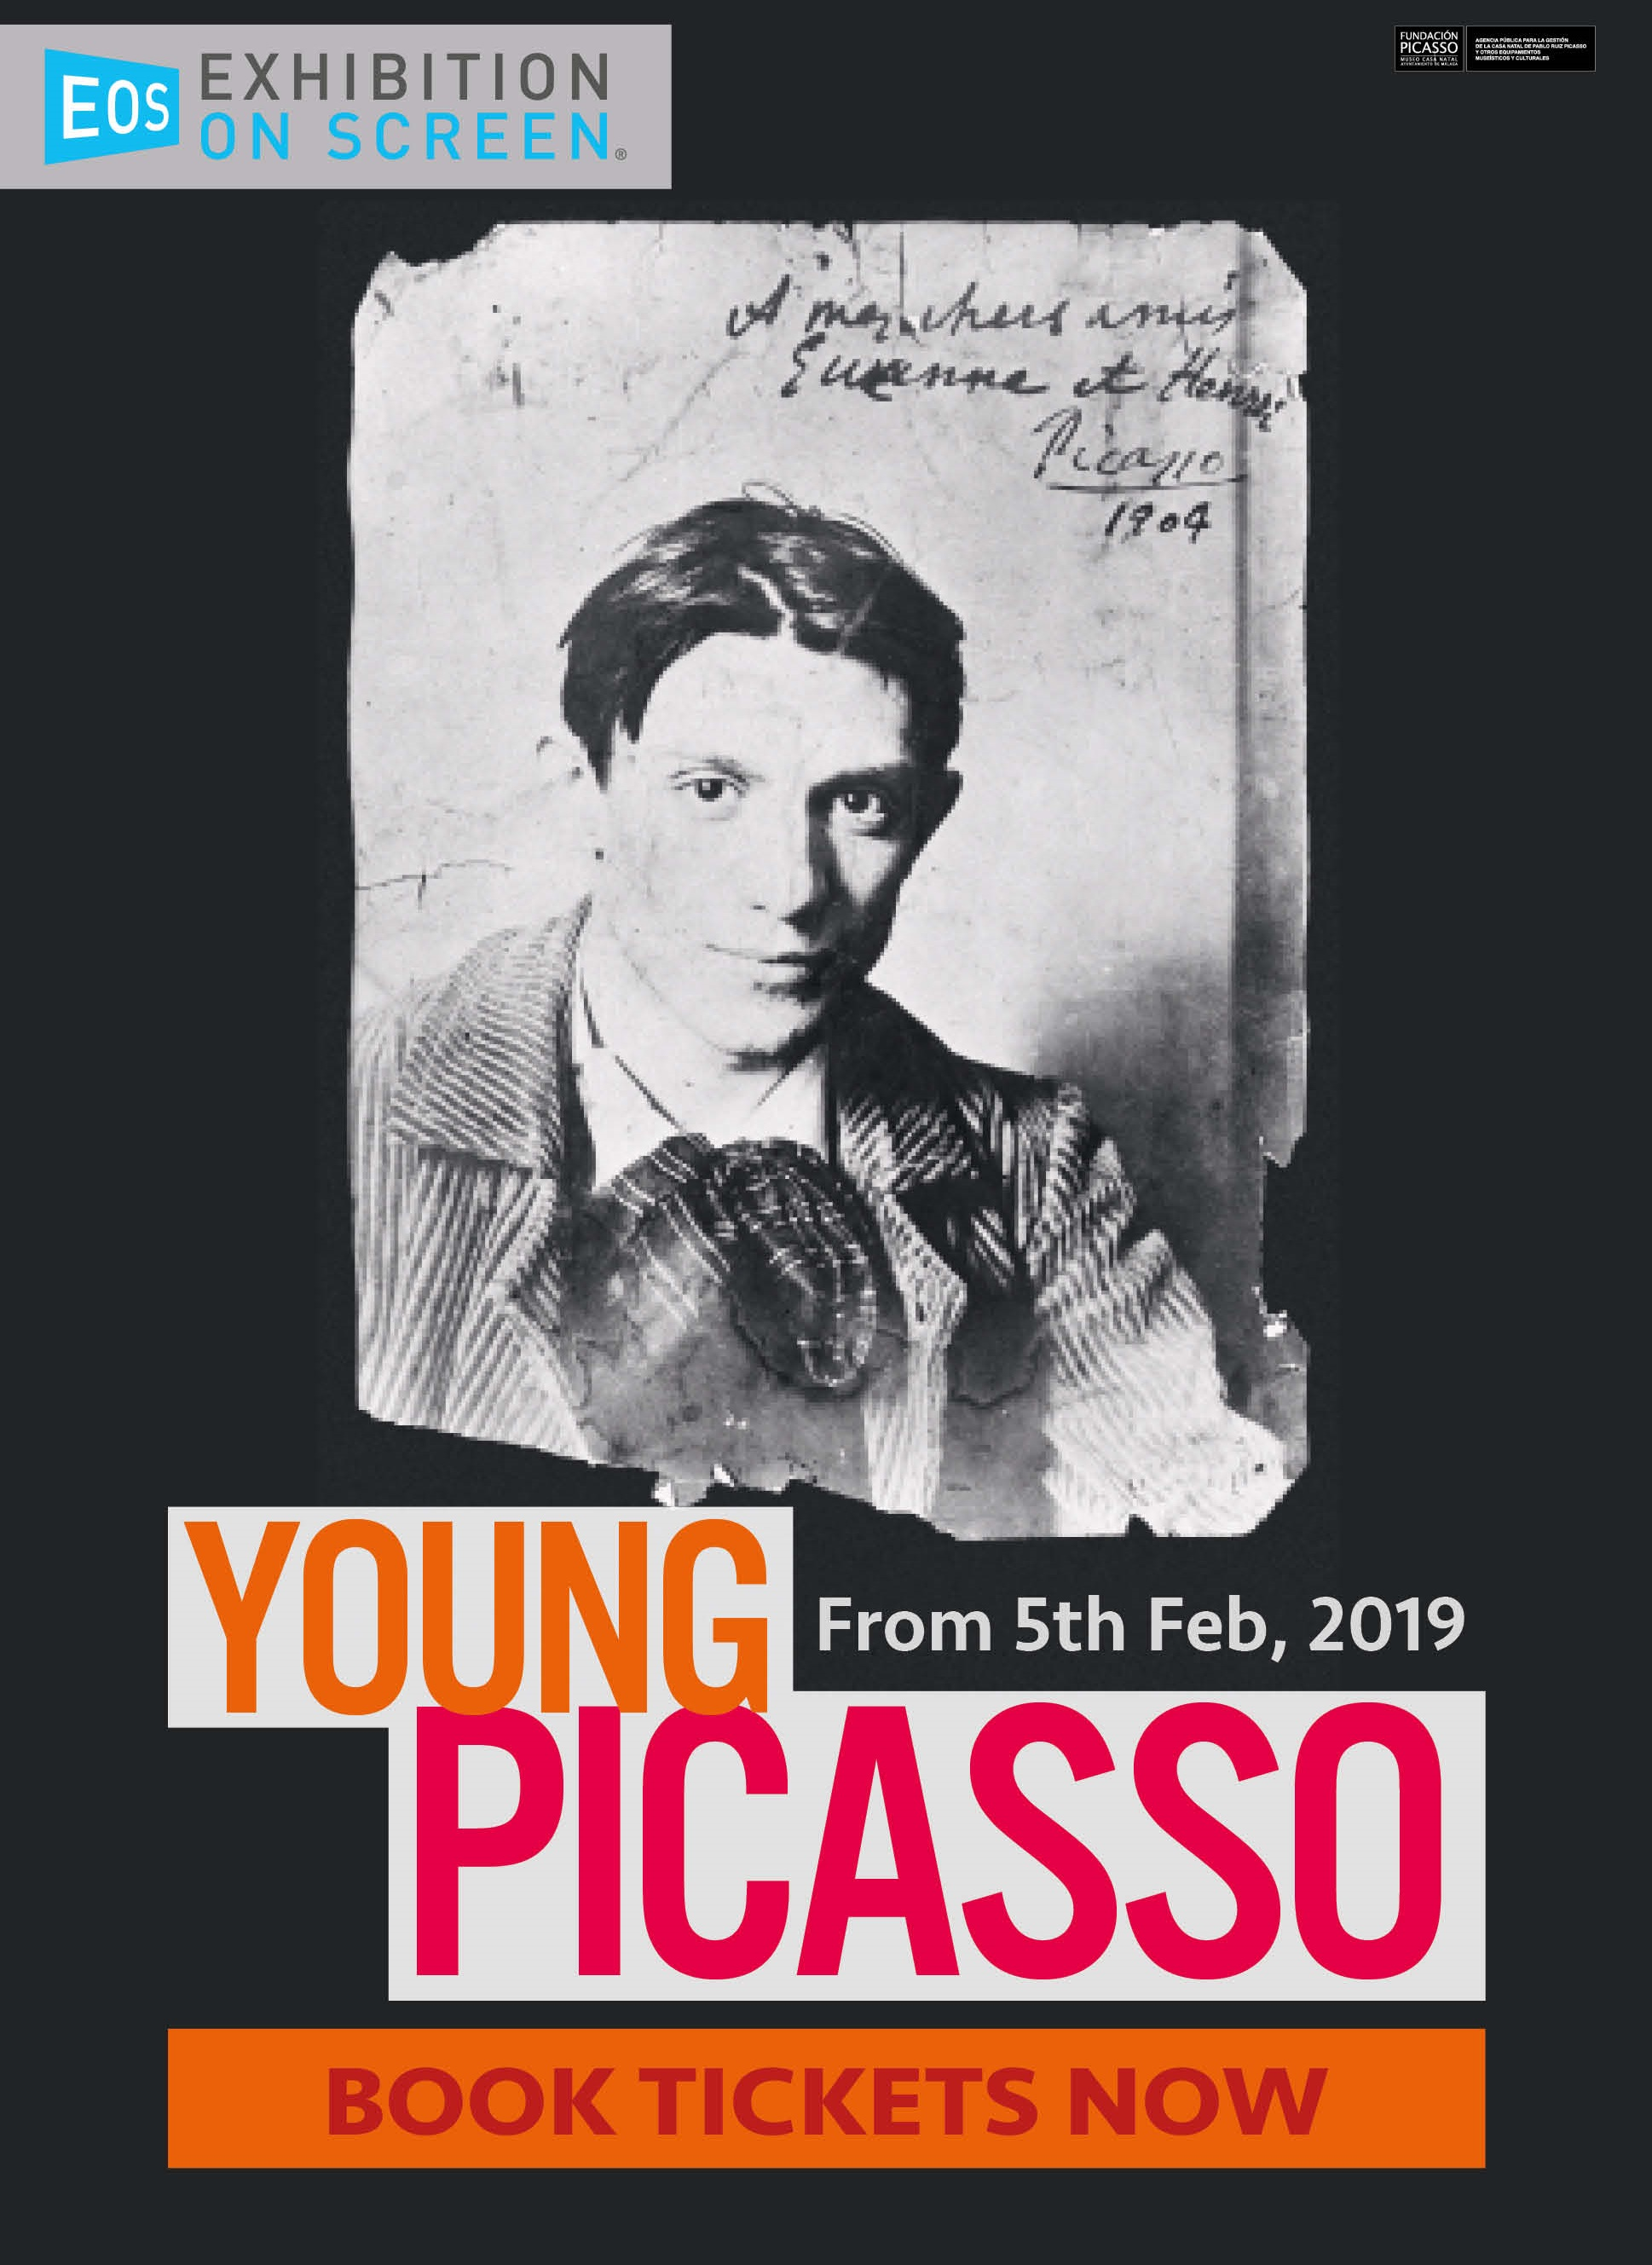 YOUNG PICASSO EXHIBITION ON SCREEN